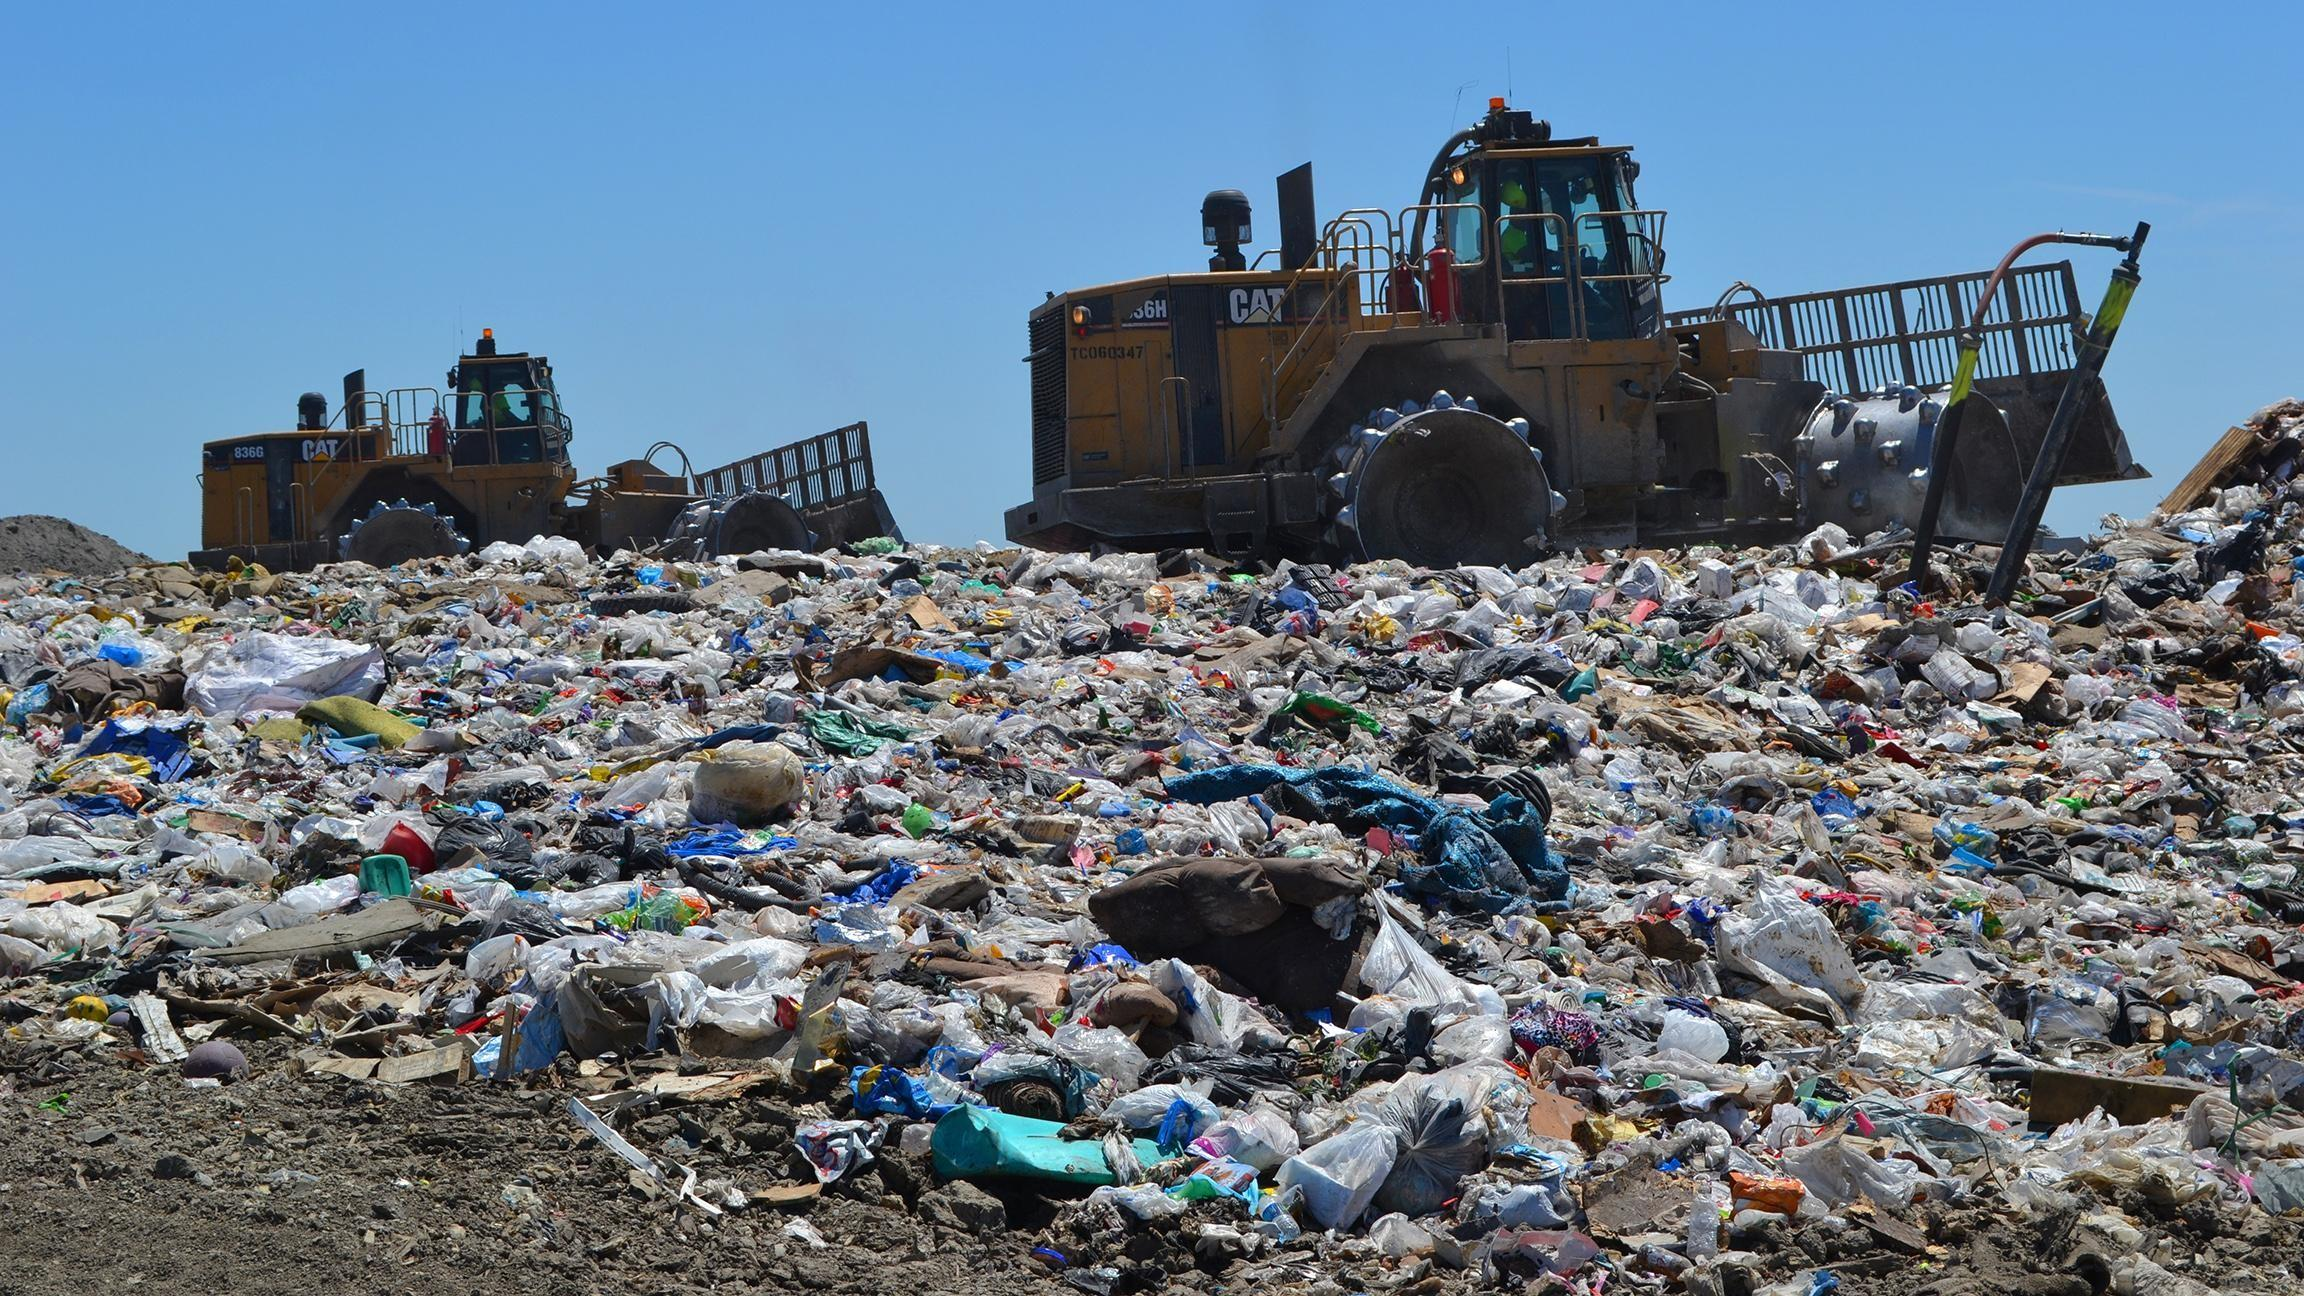 Turning Trash Into Fuel Reduces Need Landfills Study